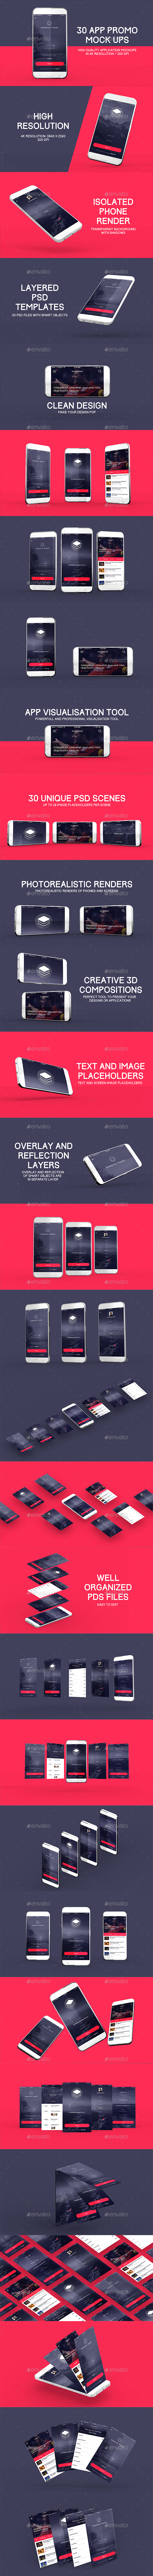 30 App Promo Mock Ups Pack - Product Mock-Ups Graphics